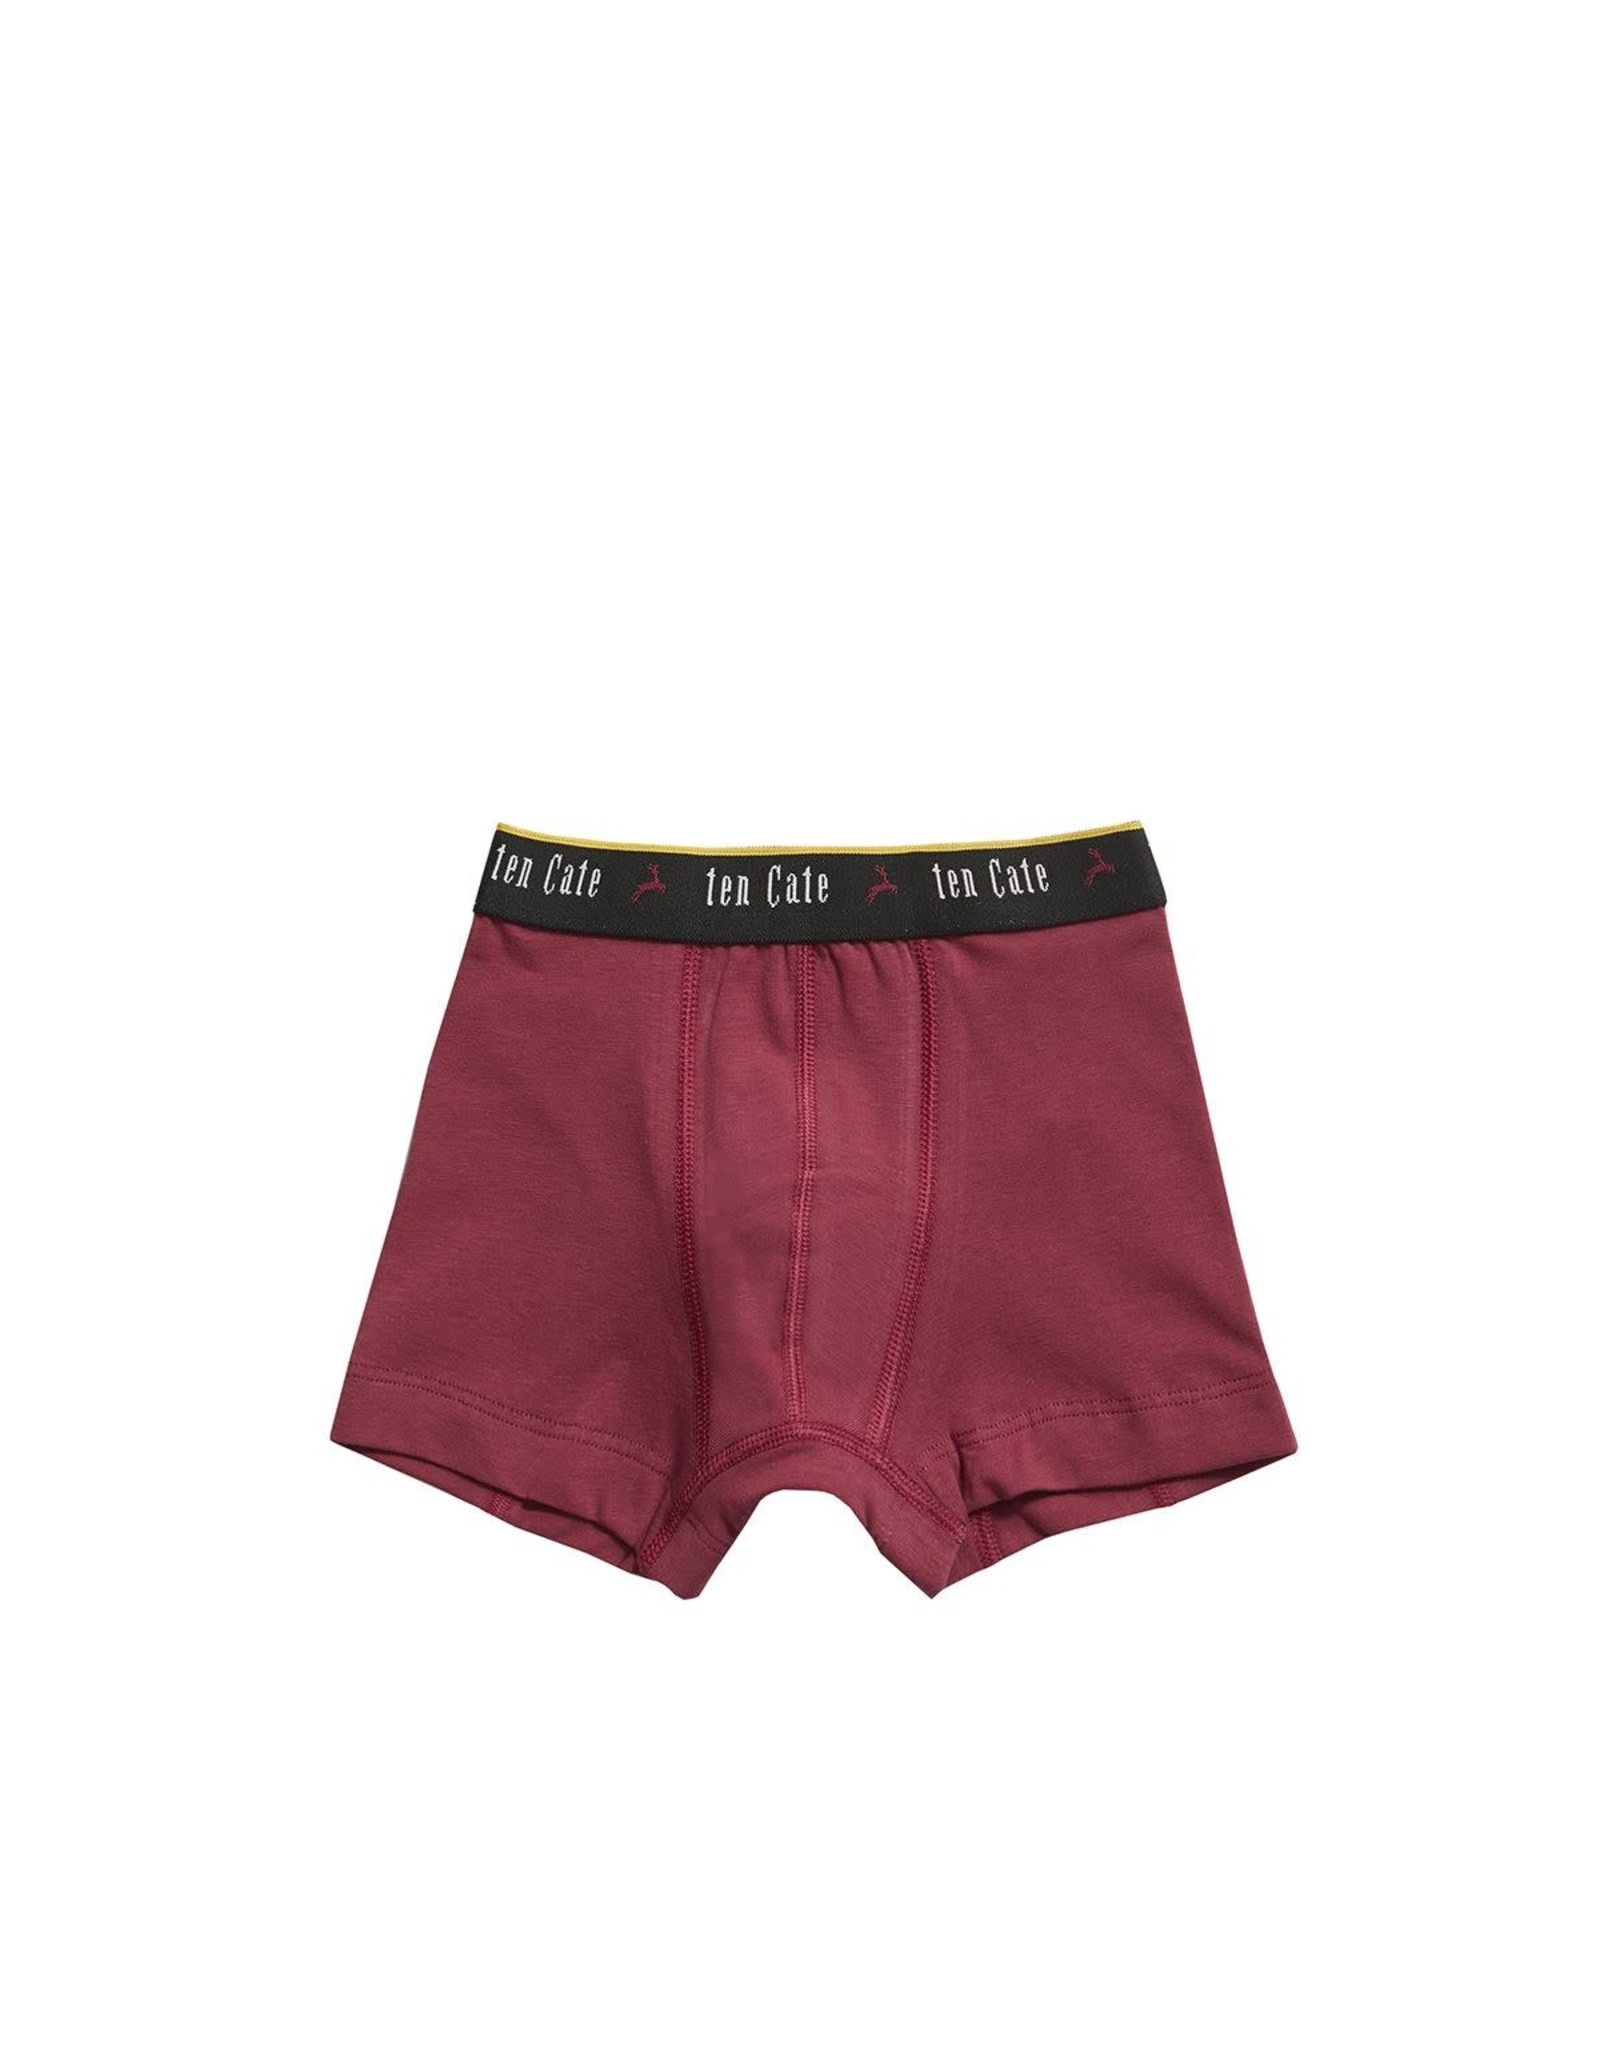 Ten Cate Basic Boys Shorts Sloths green aan brick red 2pc